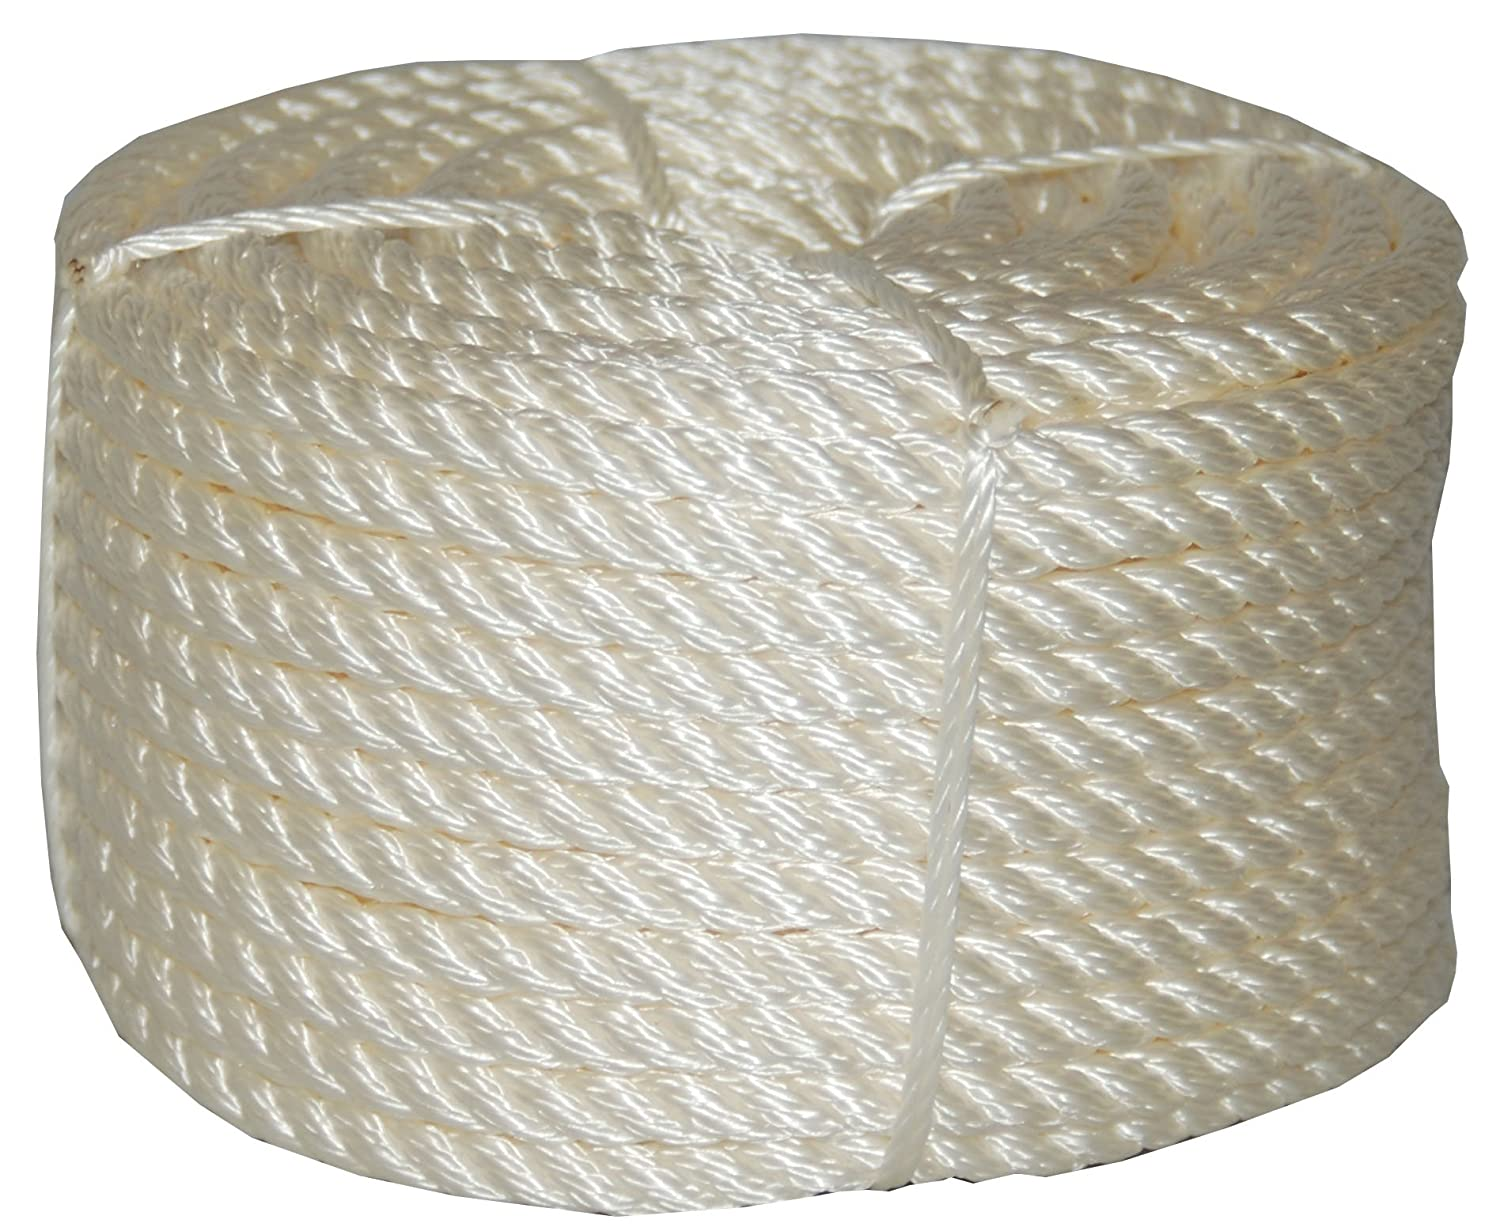 T.W Evans Cordage 32-066 3//4-Inch by 100-Feet Twisted Nylon Rope Coilette T.W Evans Cordage Co.